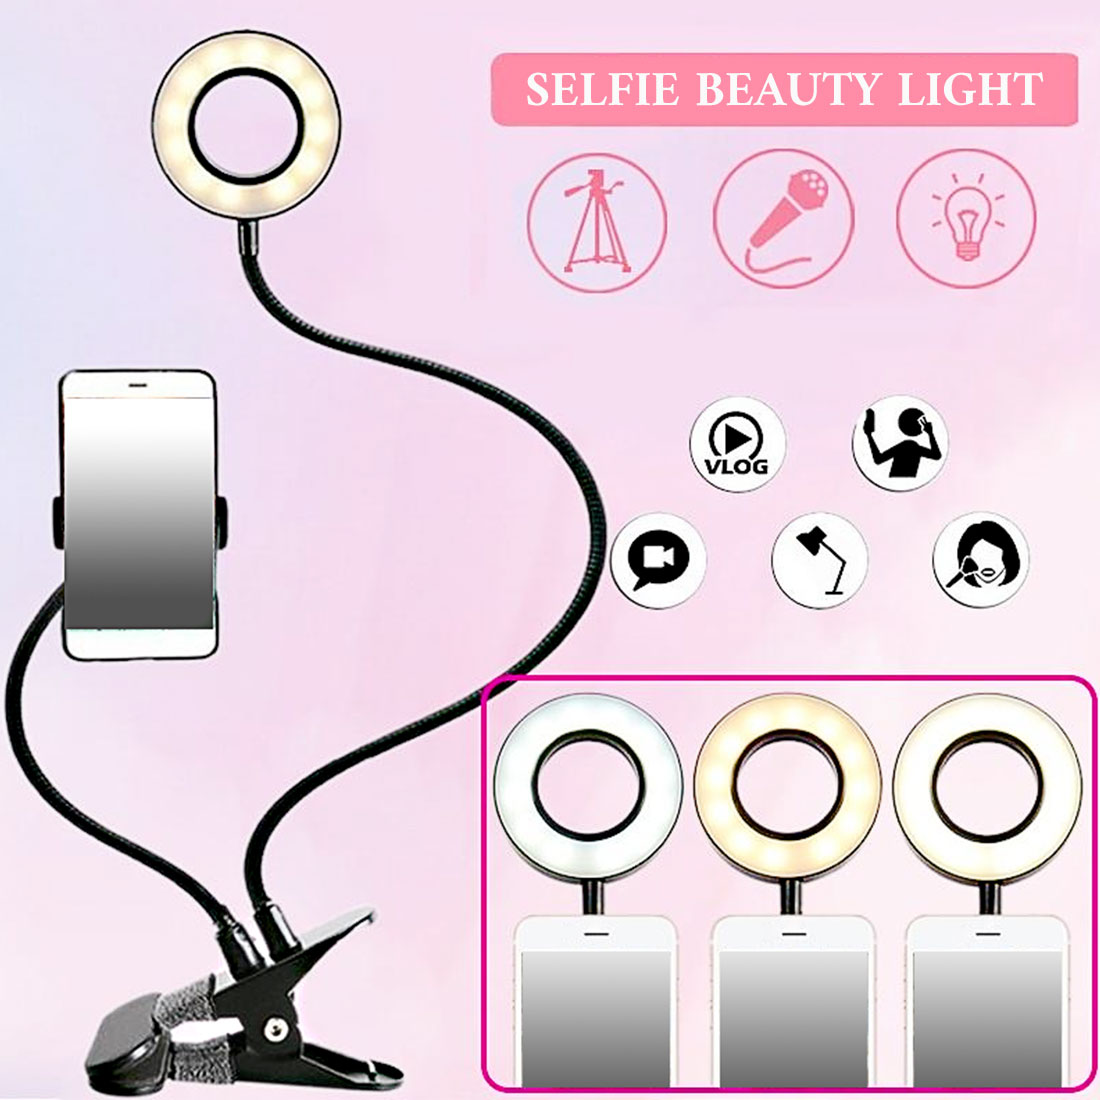 SALE Photo Studio Selfie LED Ring Light with Cell Phone  Holder for Youtube Live Stream Makeup Camera Lamp for iPhone Android